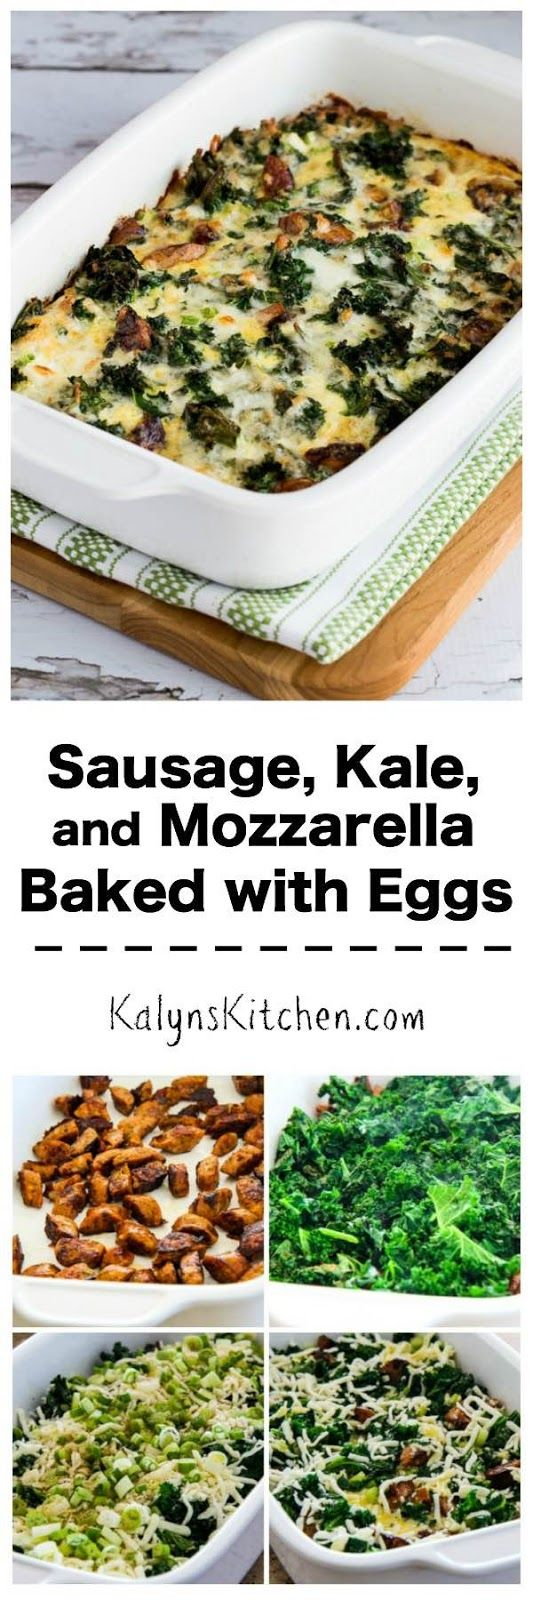 Sausage, Kale, and Mozzarella Egg Bake is a tasty low-carb dish for breakfast or brunch! You can make this on the weekend and reheat all week for a quick breakfast. [found on KalynsKitchen.com]